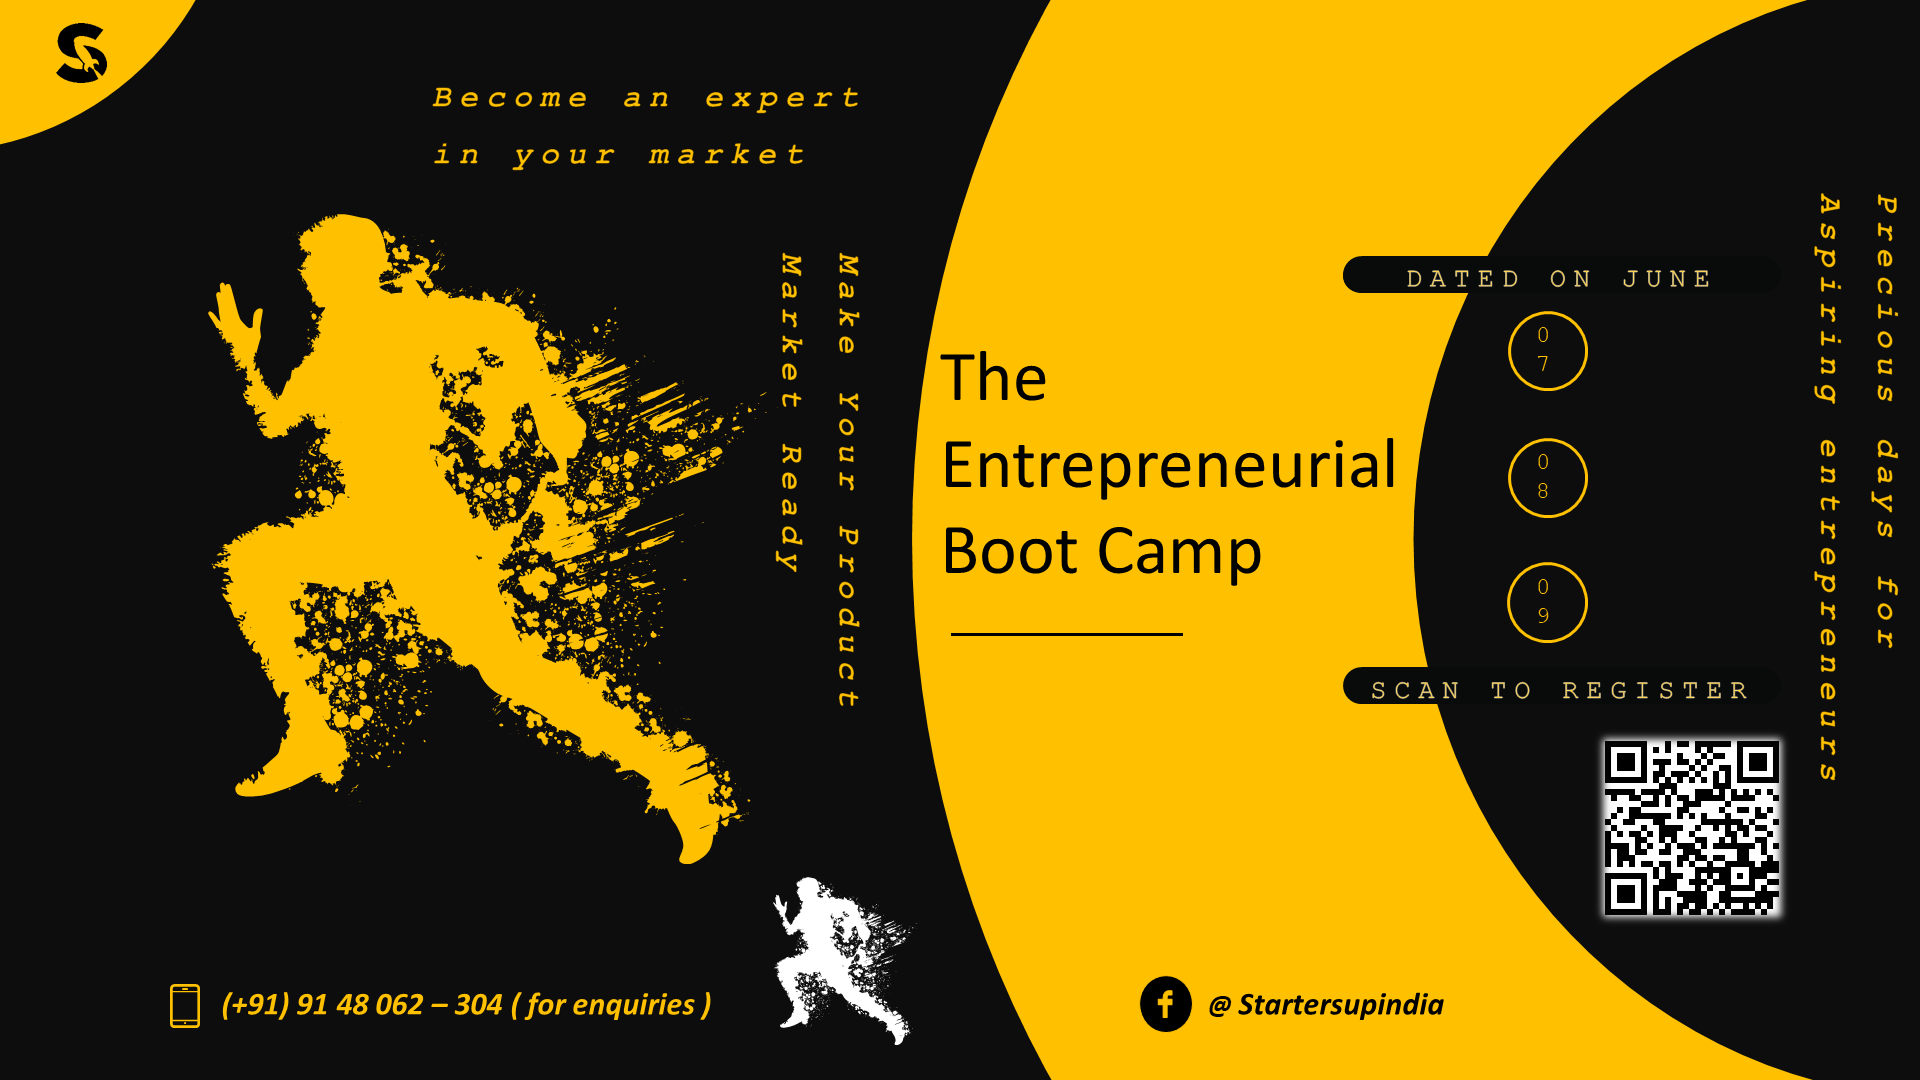 The Entrepreneurial Boot Camp 2018